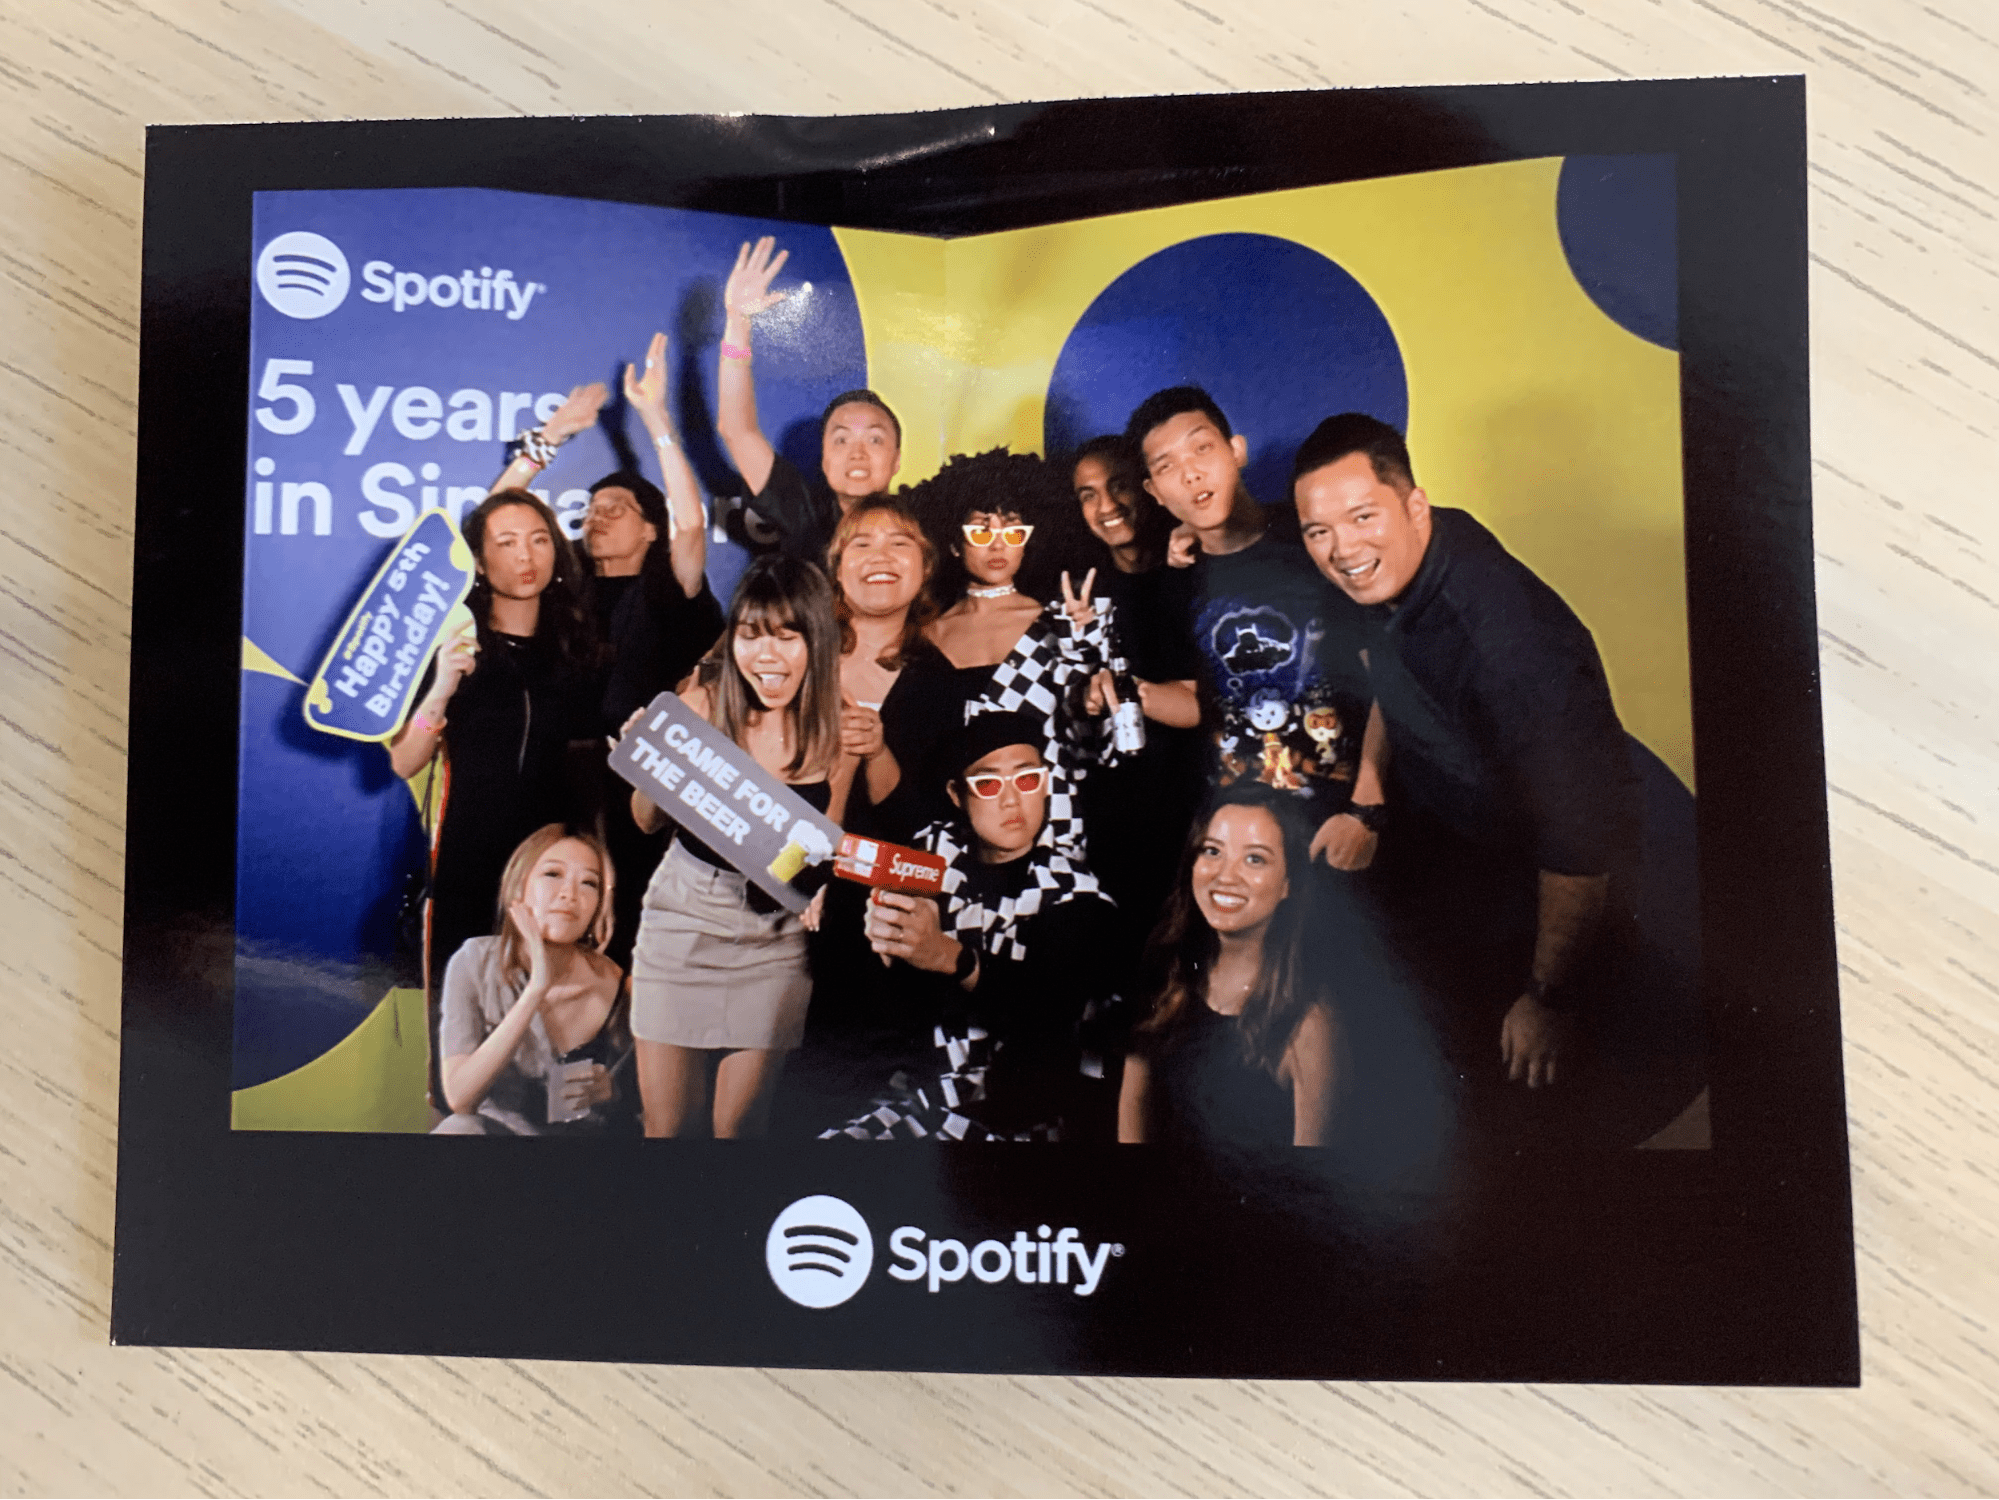 nikki homaili with her colleagues at spotify's 5th anniversary event